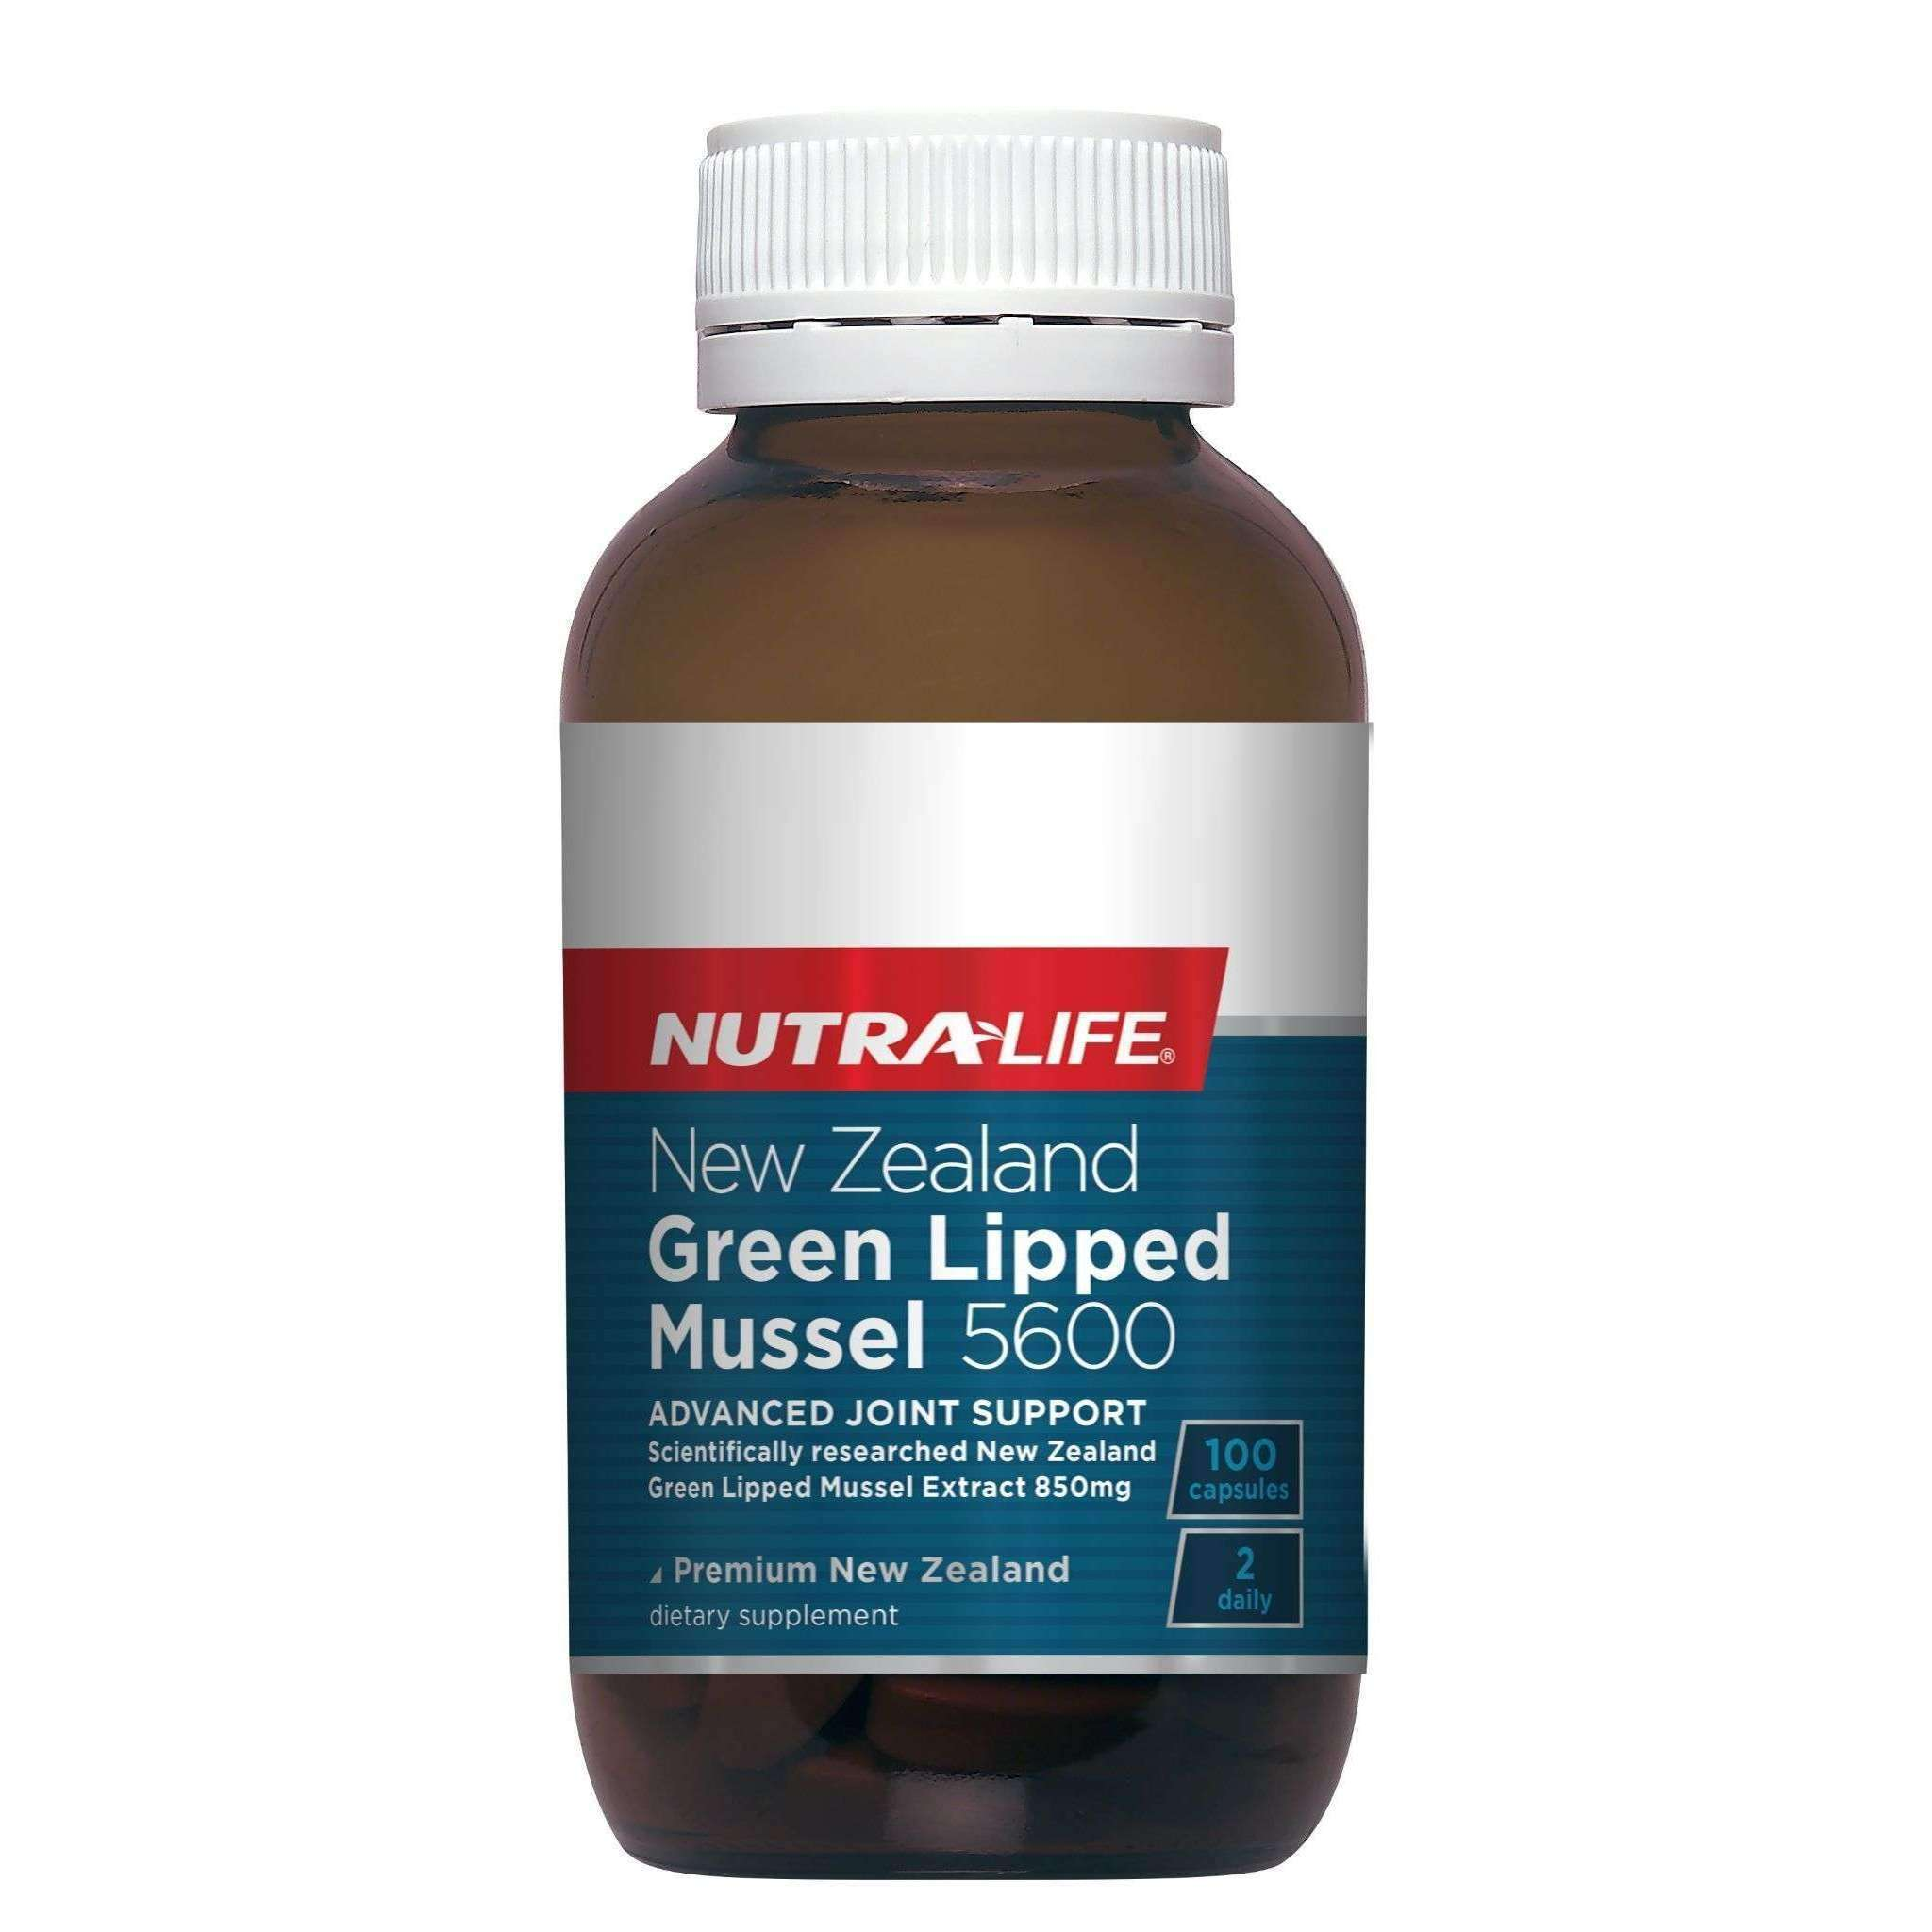 Nutra-Life NZ Green Lipped Mussel 5600